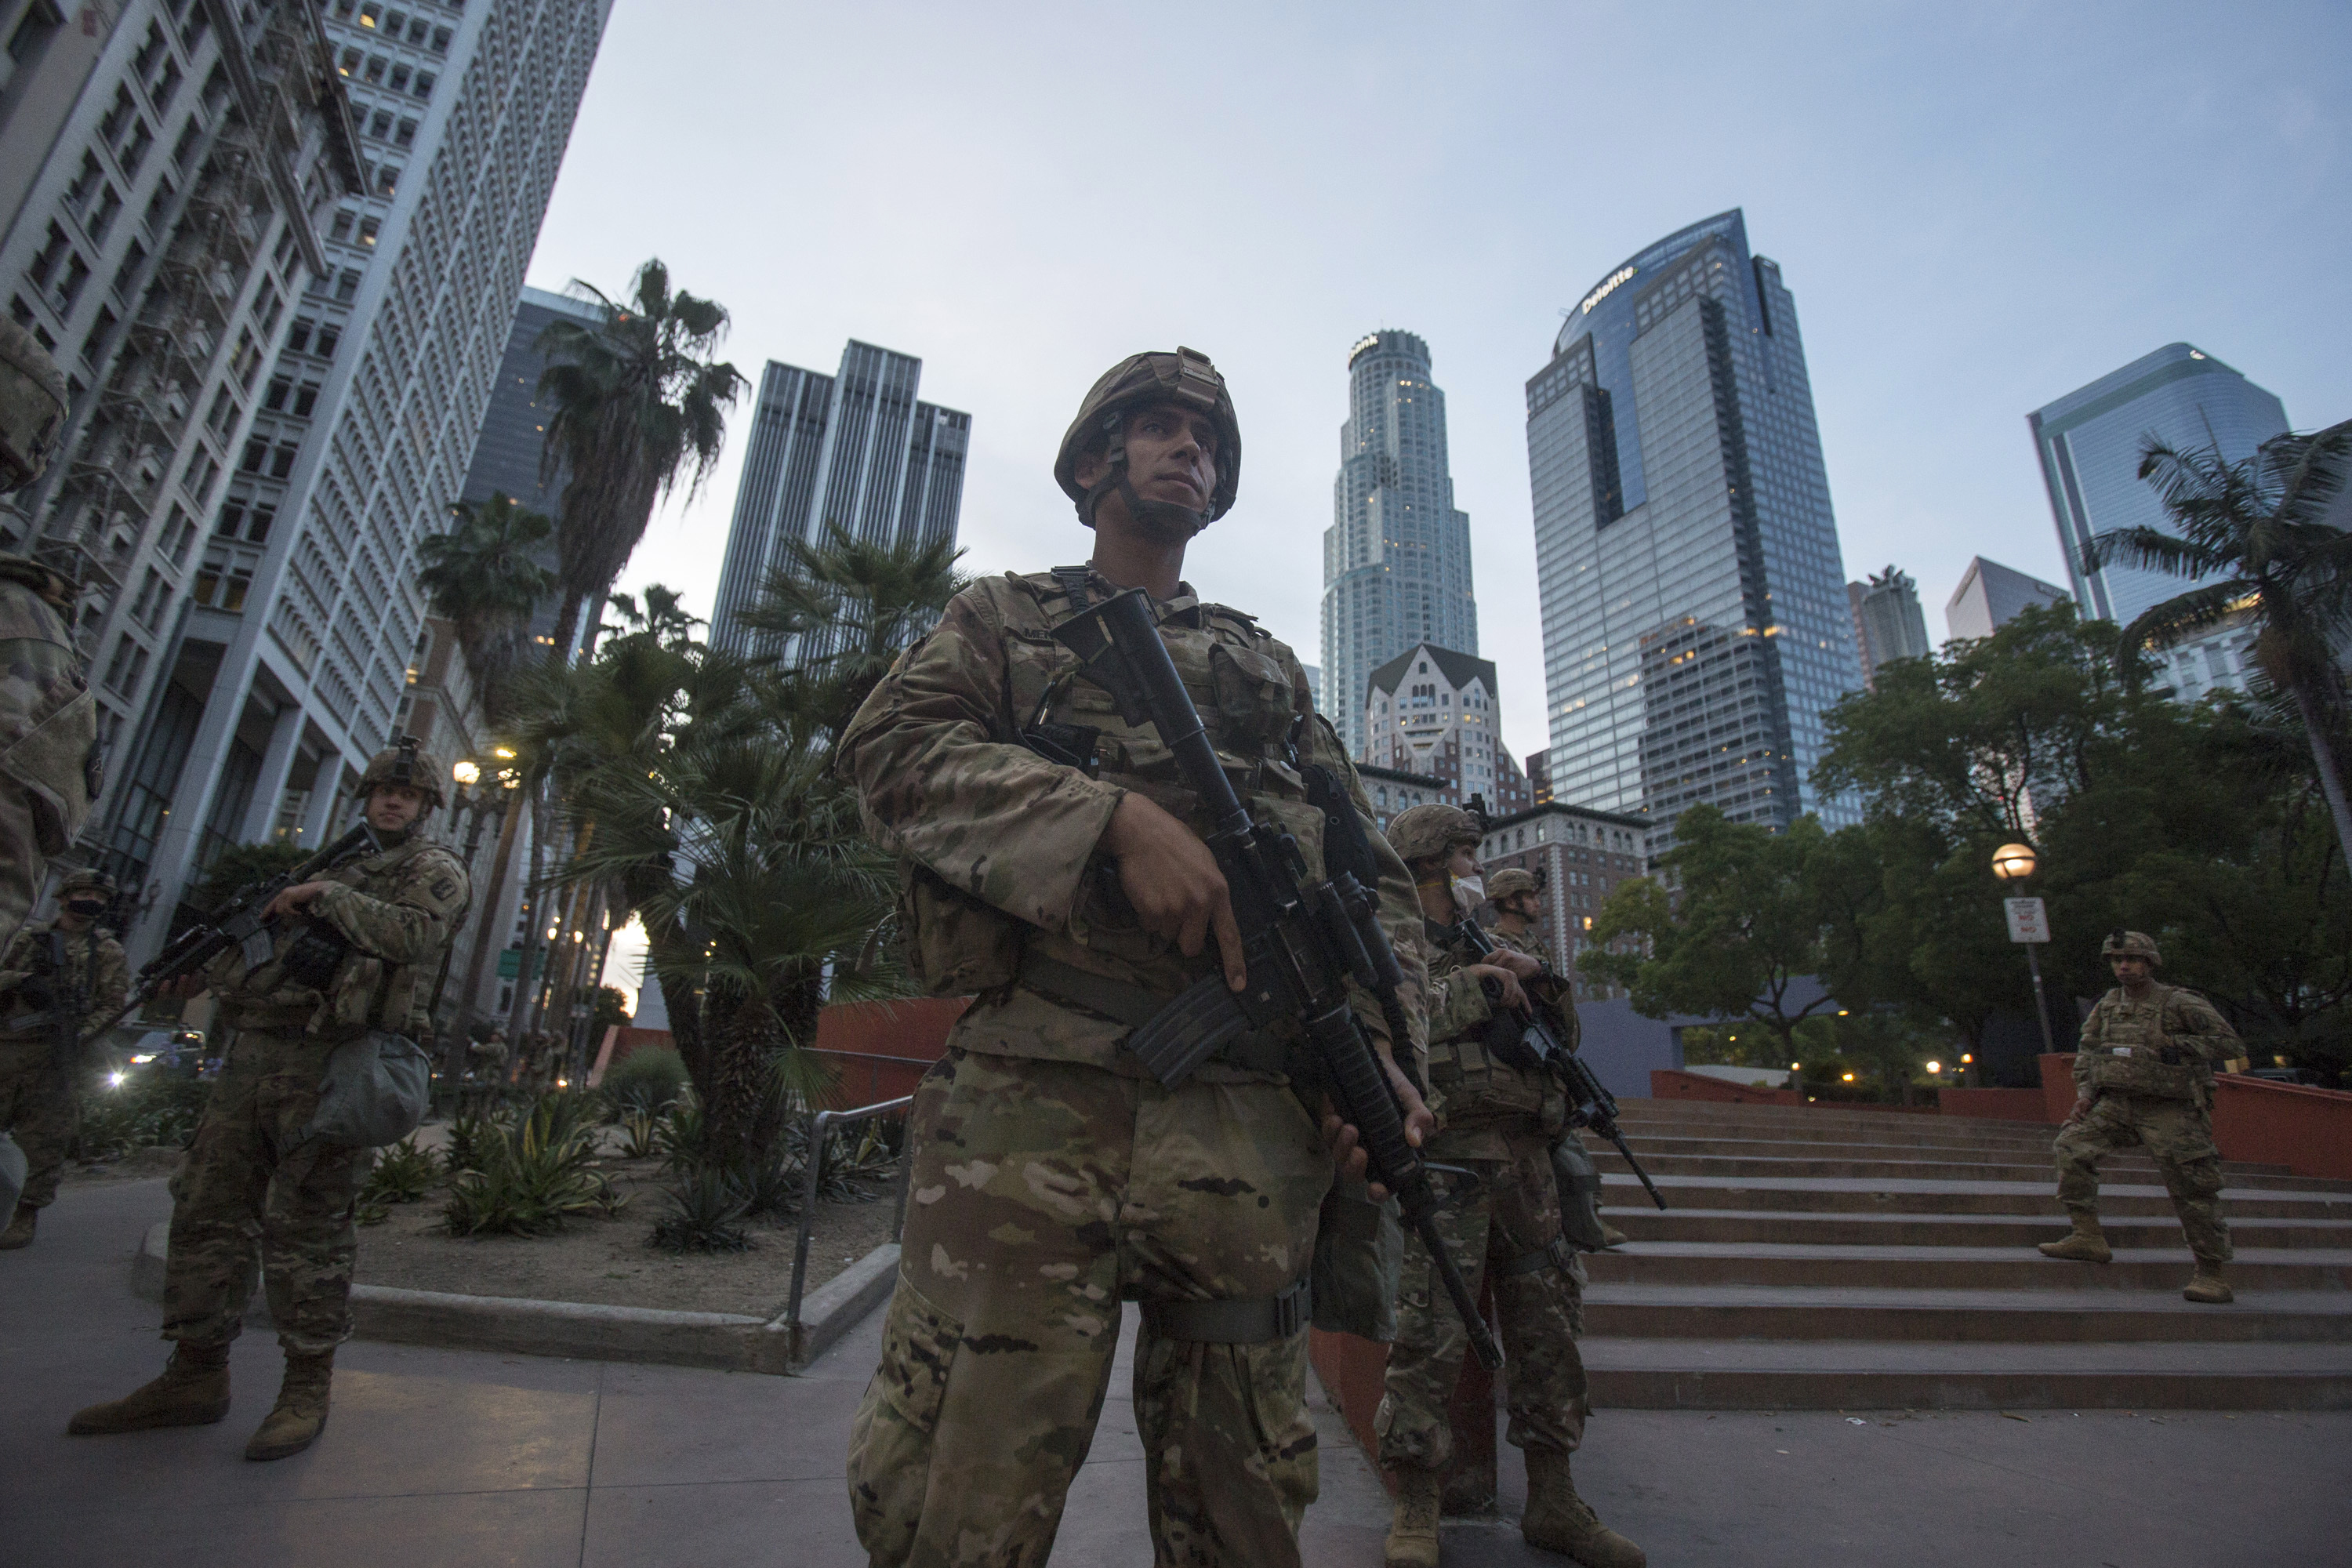 Members of California National Guard stand guard in Pershing Square, Sunday, May 31, 2020, in Los Angeles. The National Guard is patrolling Los Angeles as the city begins cleaning up after a night of violence by demonstrators that saw clash with officers and torch police vehicles and pillage stores. (AP Photo/Ringo H.W. Chiu)